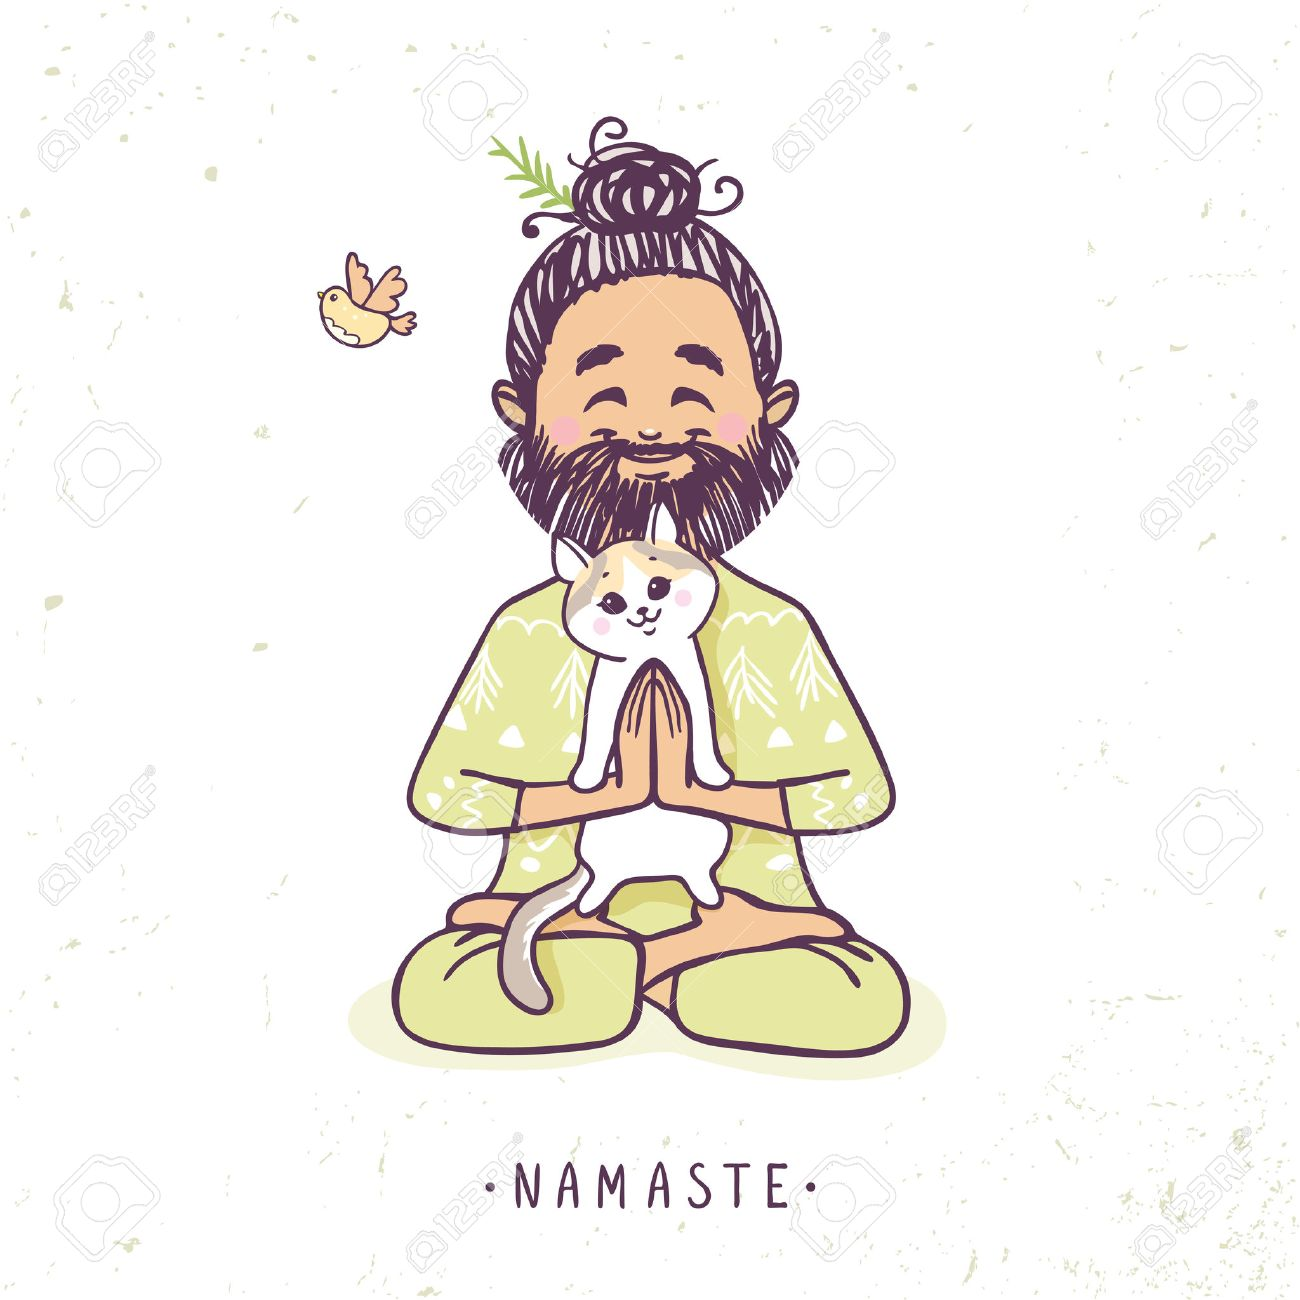 1300x1300 Character Positive Man With Cute Cat In Greeting Pose Namaste